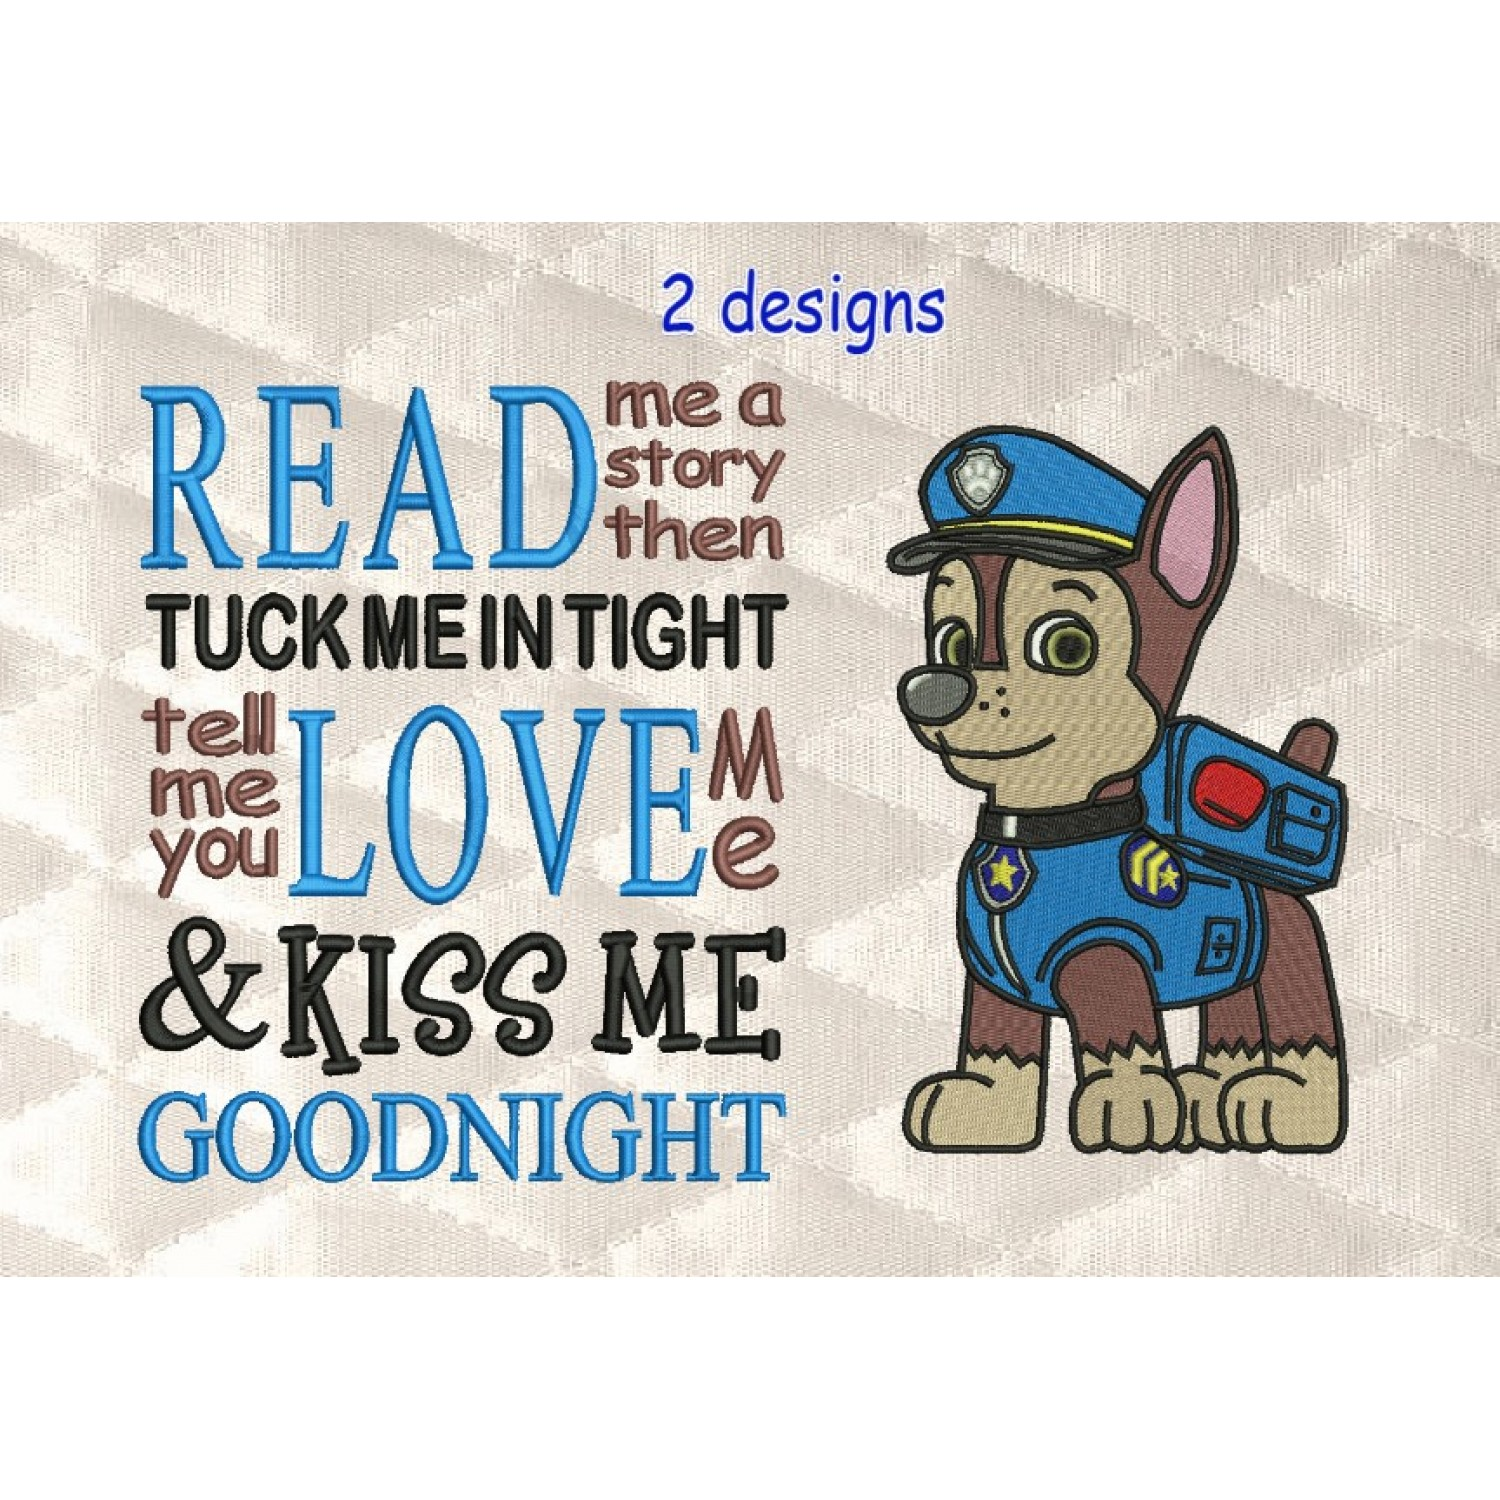 Paw Patrol Chase embroidery with read me a story reading pillow